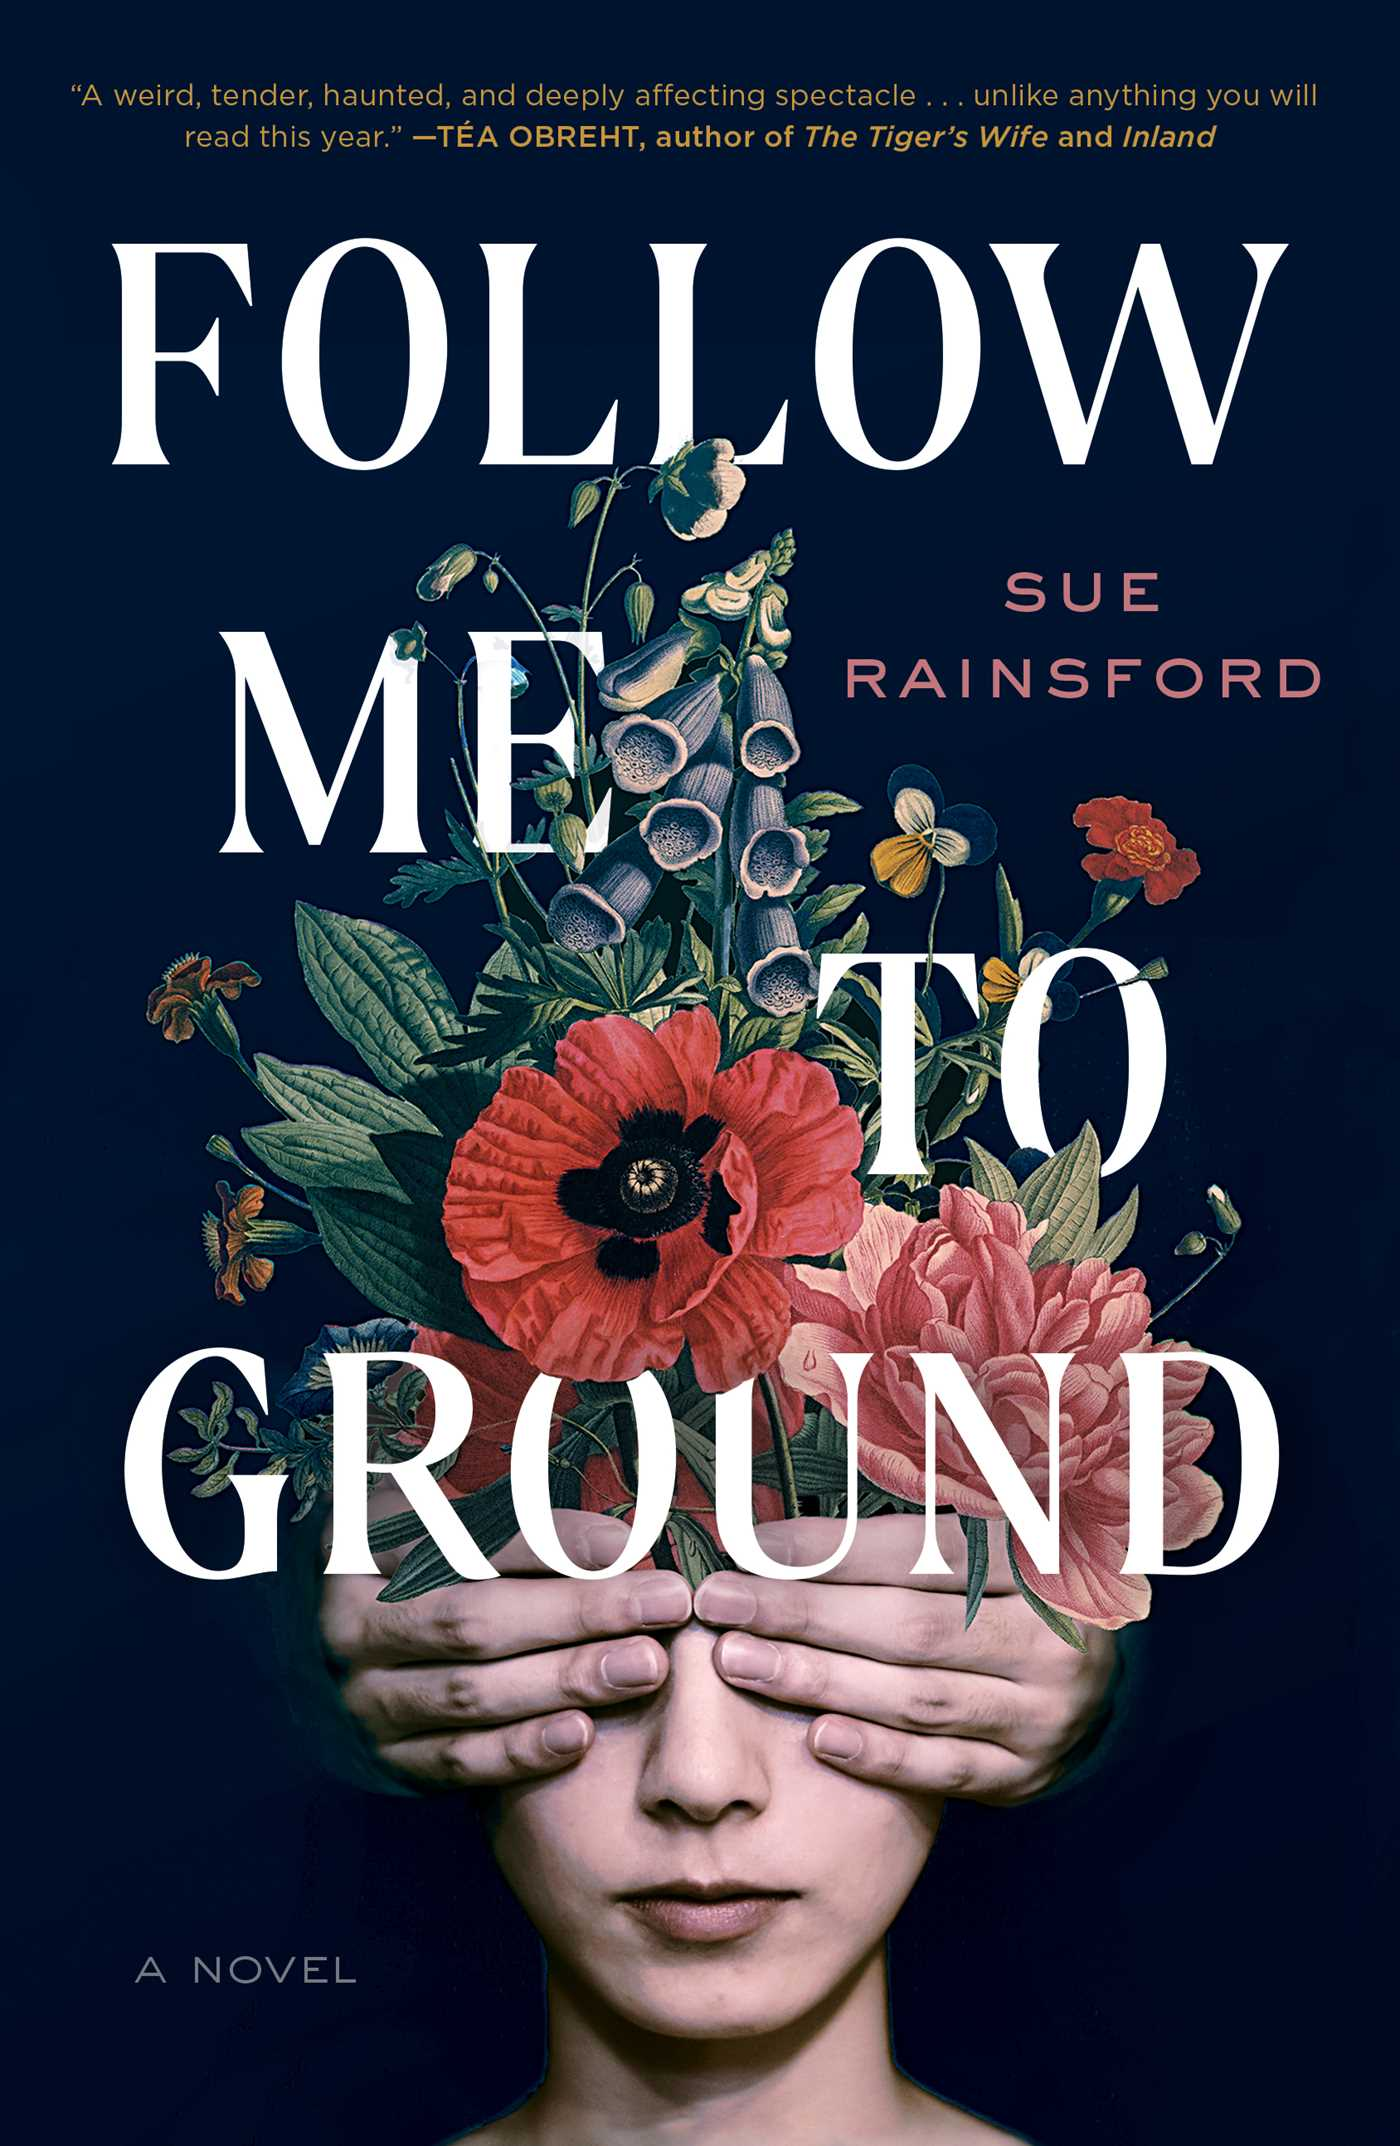 Follow Me to Ground